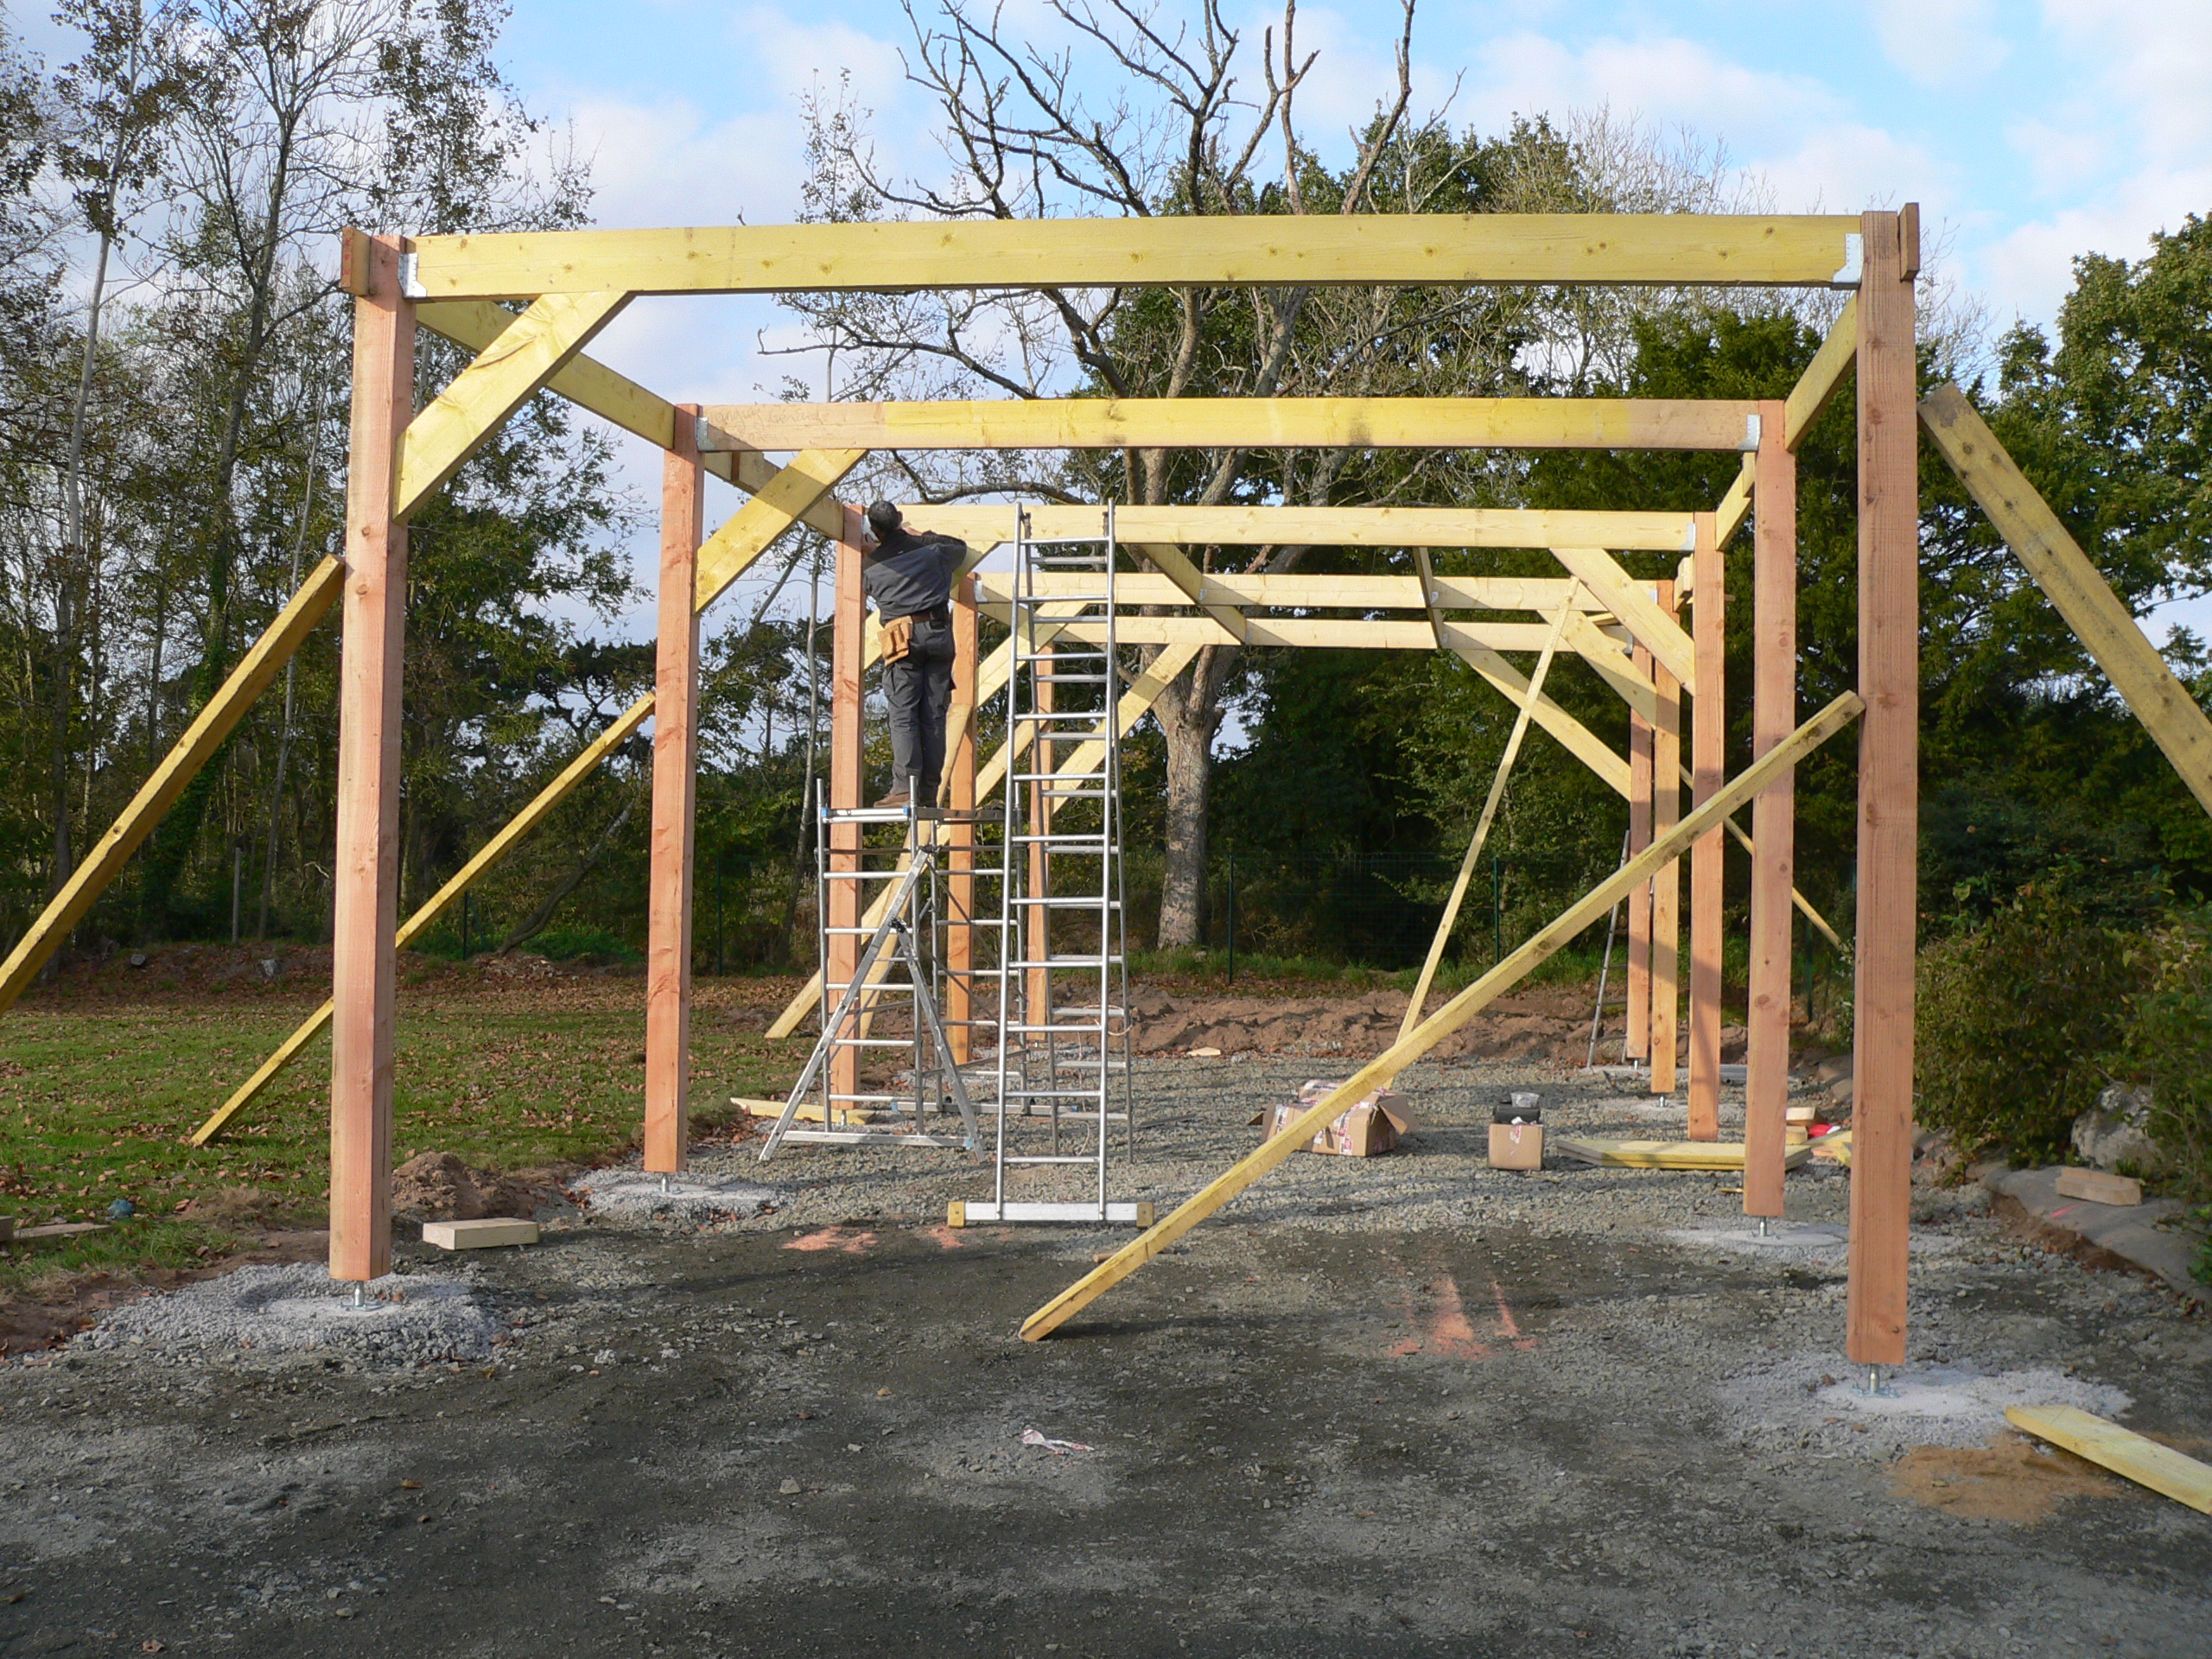 Construction garage en bois morlaix 2011 thomas paugam for Structure de bois